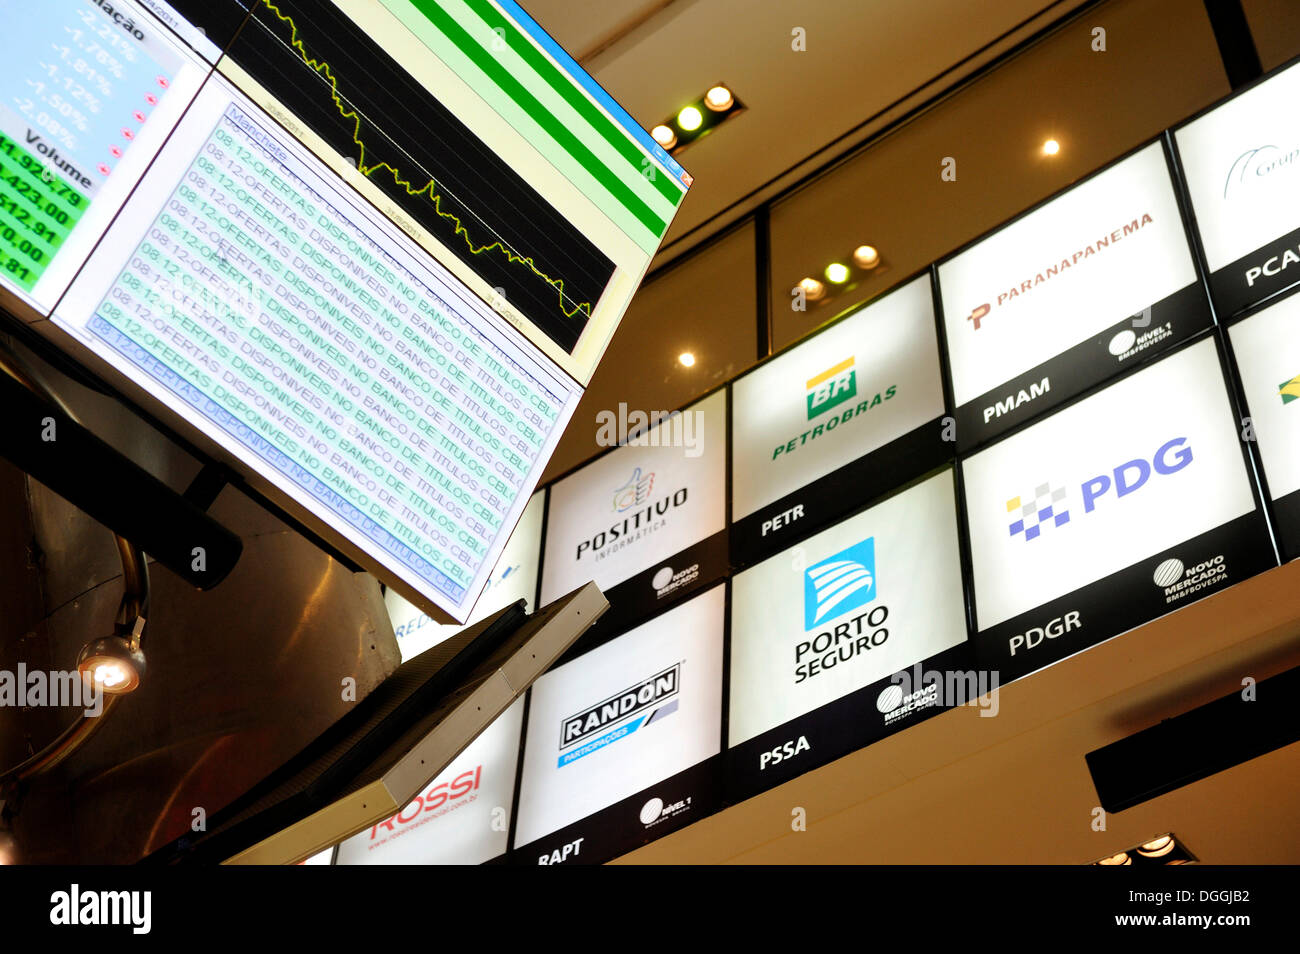 Display of stock market prices and logos of Brazilian companies, visitor centre of Bovespa, the Sao Paulo Stock Exchange, Brazil - Stock Image